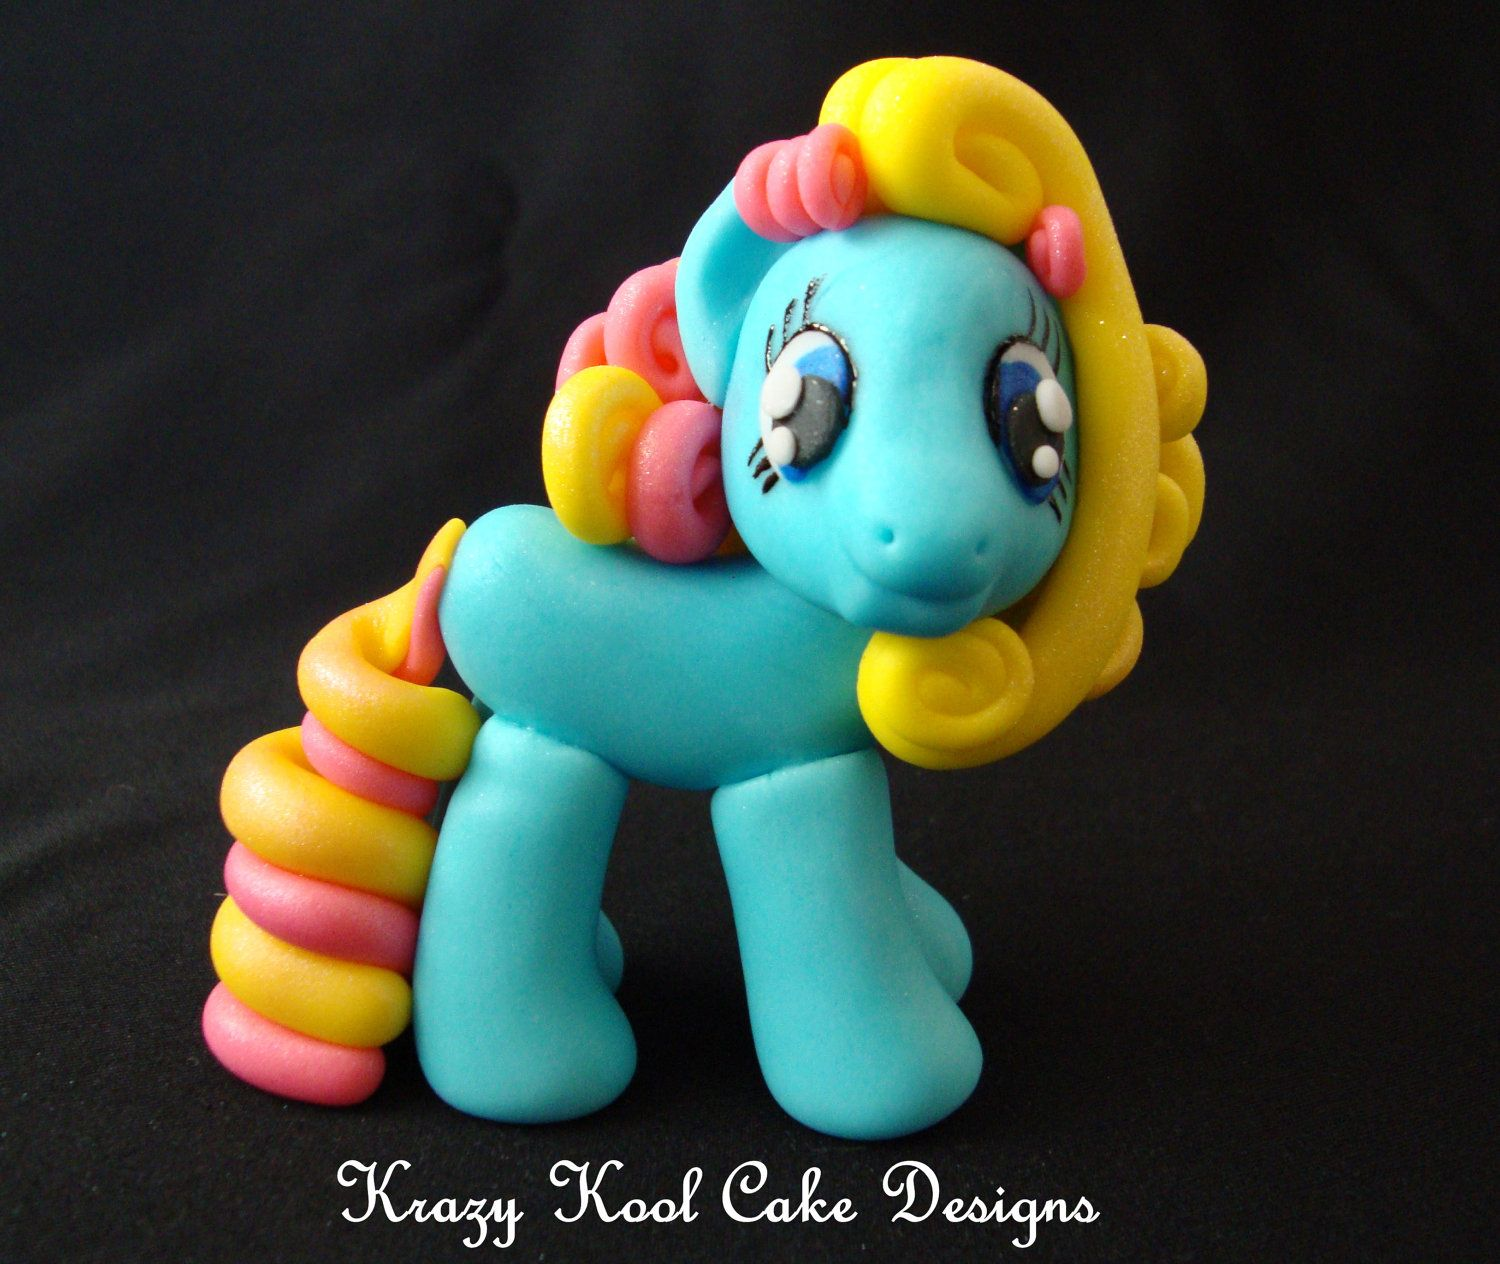 See Lovelytutorials for insturctions on how to make pony - teal/yellow/pink pony